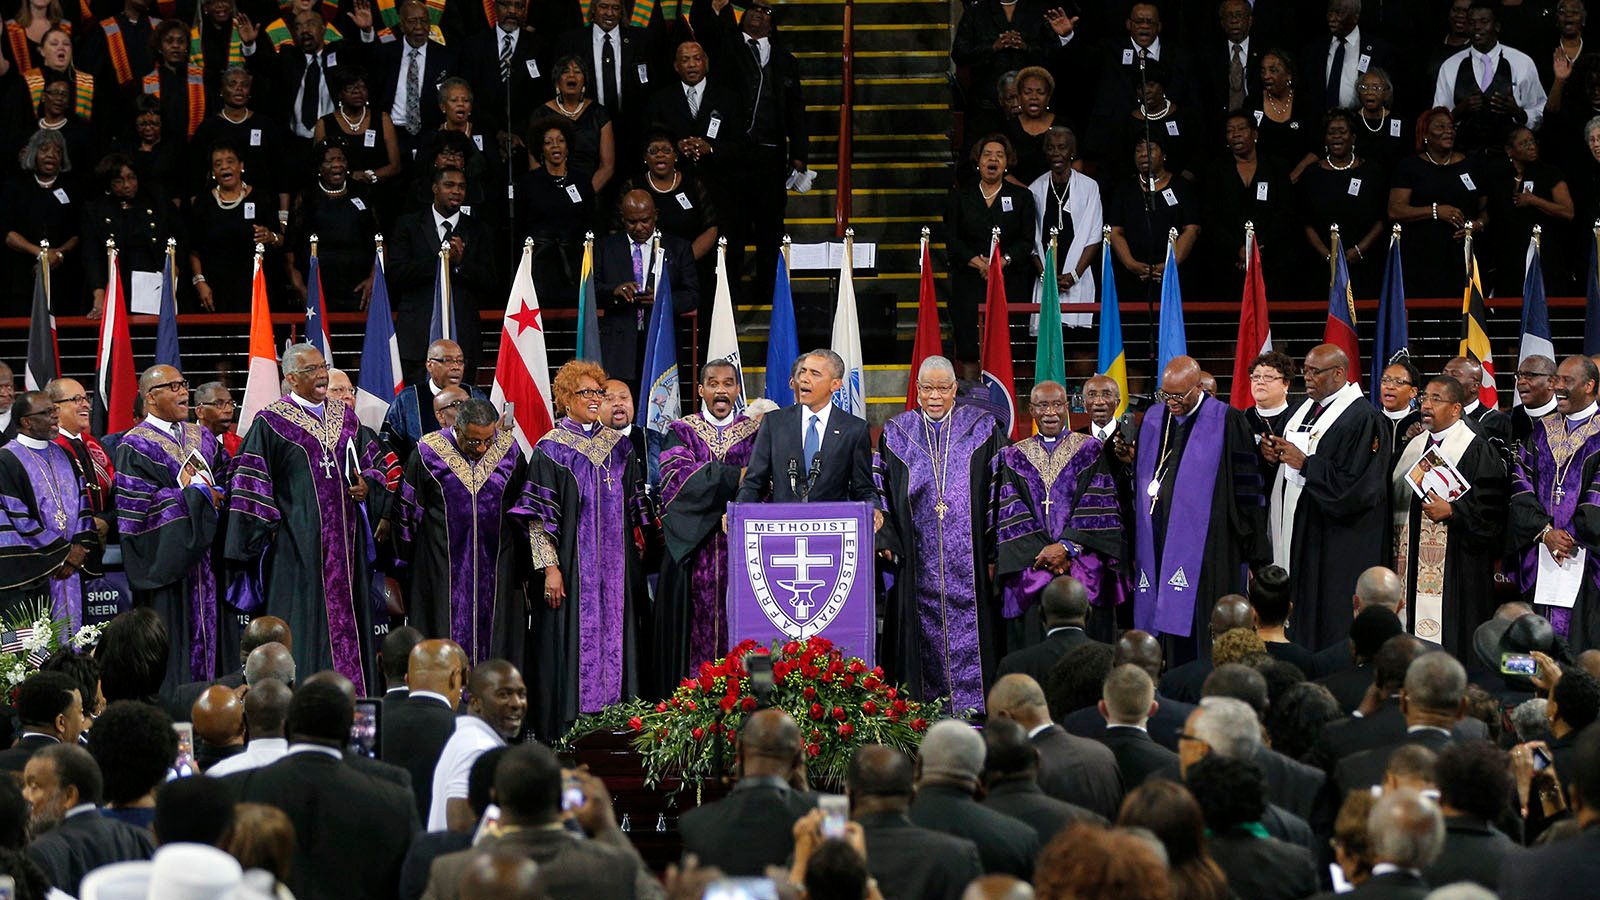 """U.S. President Barack Obama leads mourners in singing """"Amazing Grace"""" as he delivers a eulogy in honor of the Rev. Clementa Pinckney during funeral services for Pinckney in Charleston, S.C., on June 26, 2015. Pinckney was one of nine victims of a mass shooting at the Mother Emanuel AME Church. Photo by Brian Snyder/Reuters"""